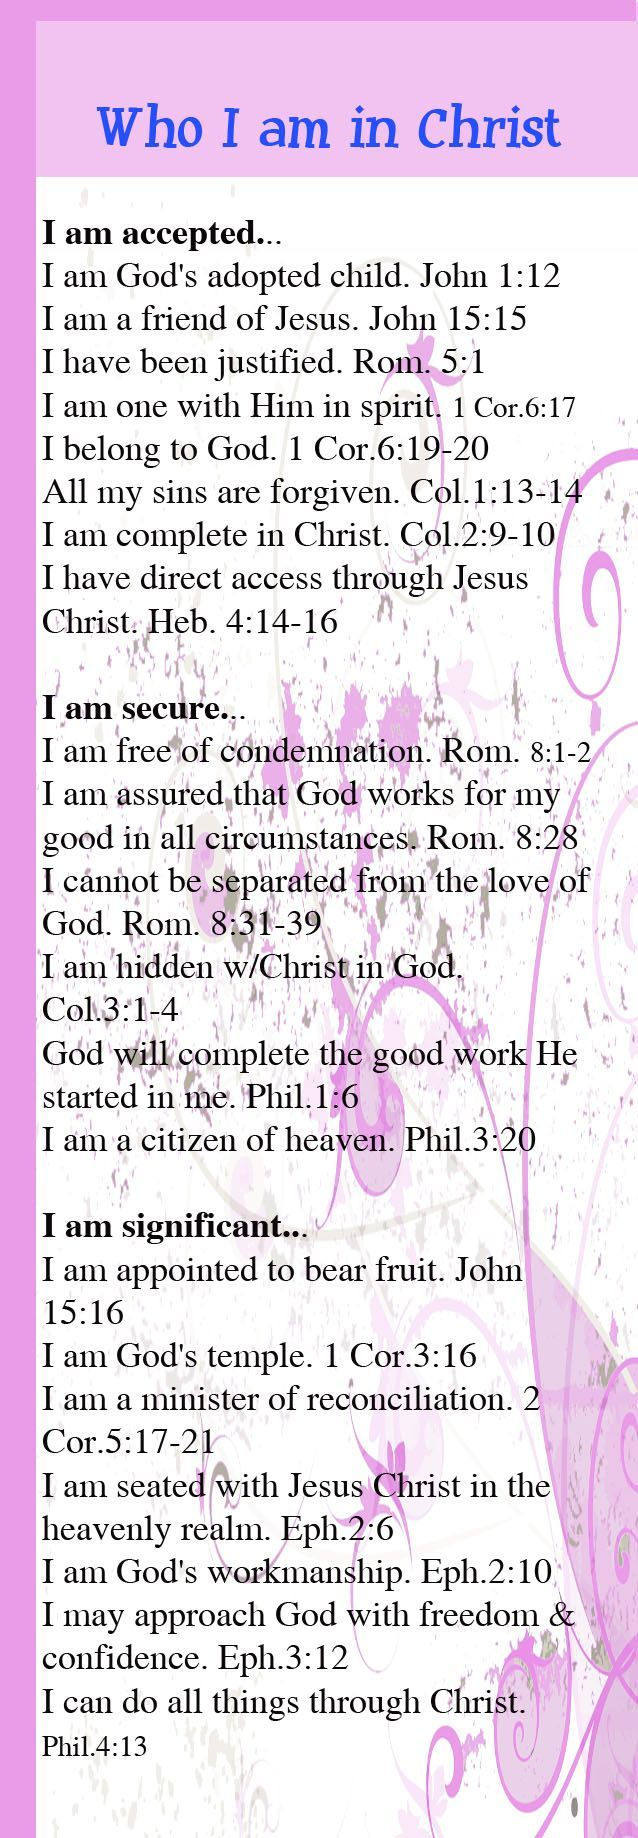 Who I am in Christ .Here is another great website about Our Identity In Christ --- > http://www.sw-mins.org/identity.html